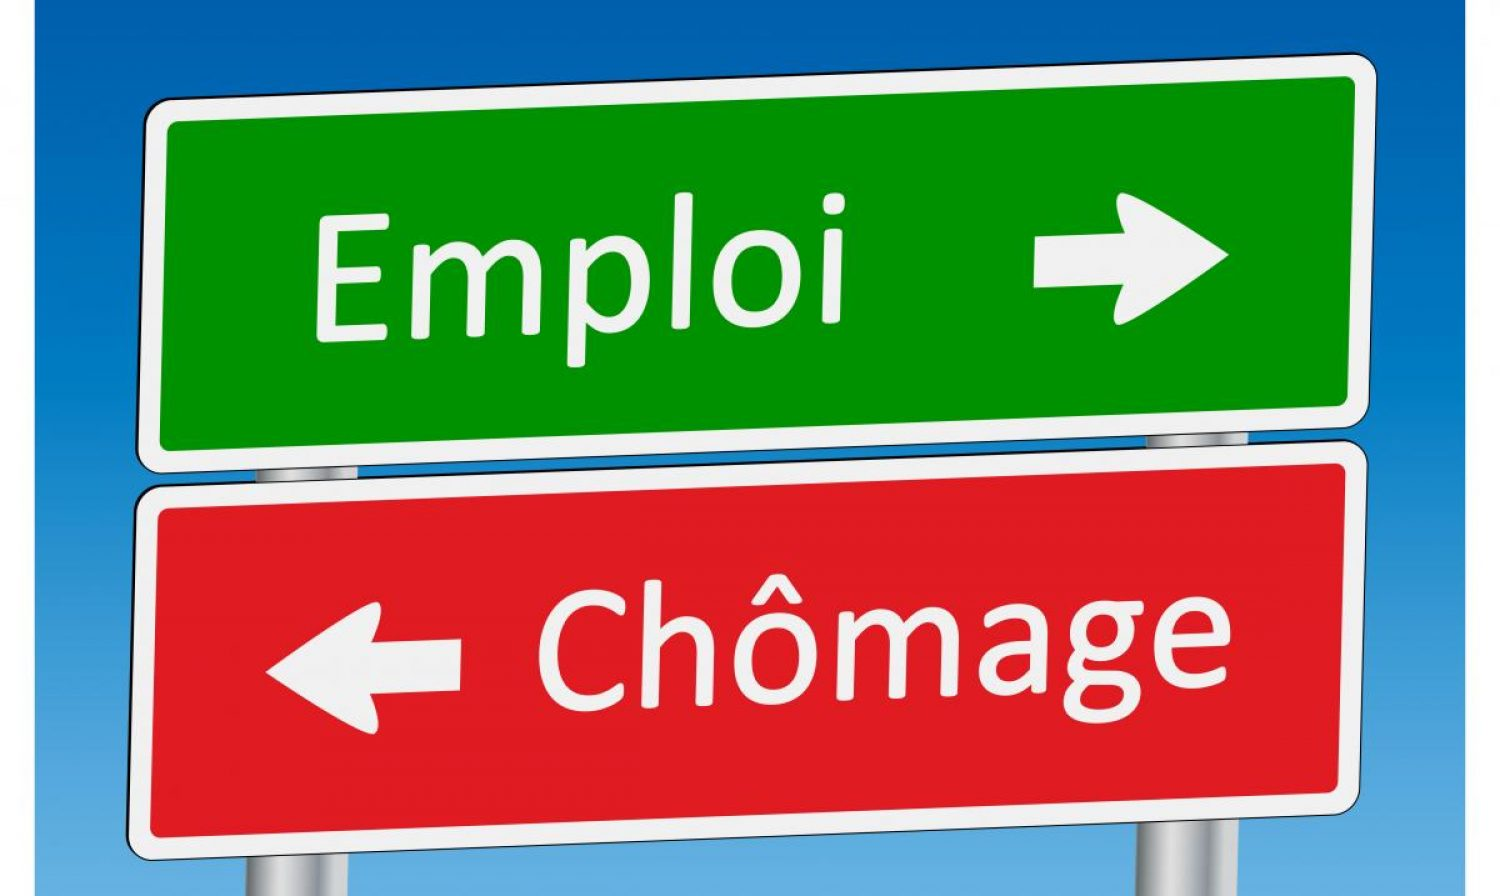 Comment obtenir le chomage ?